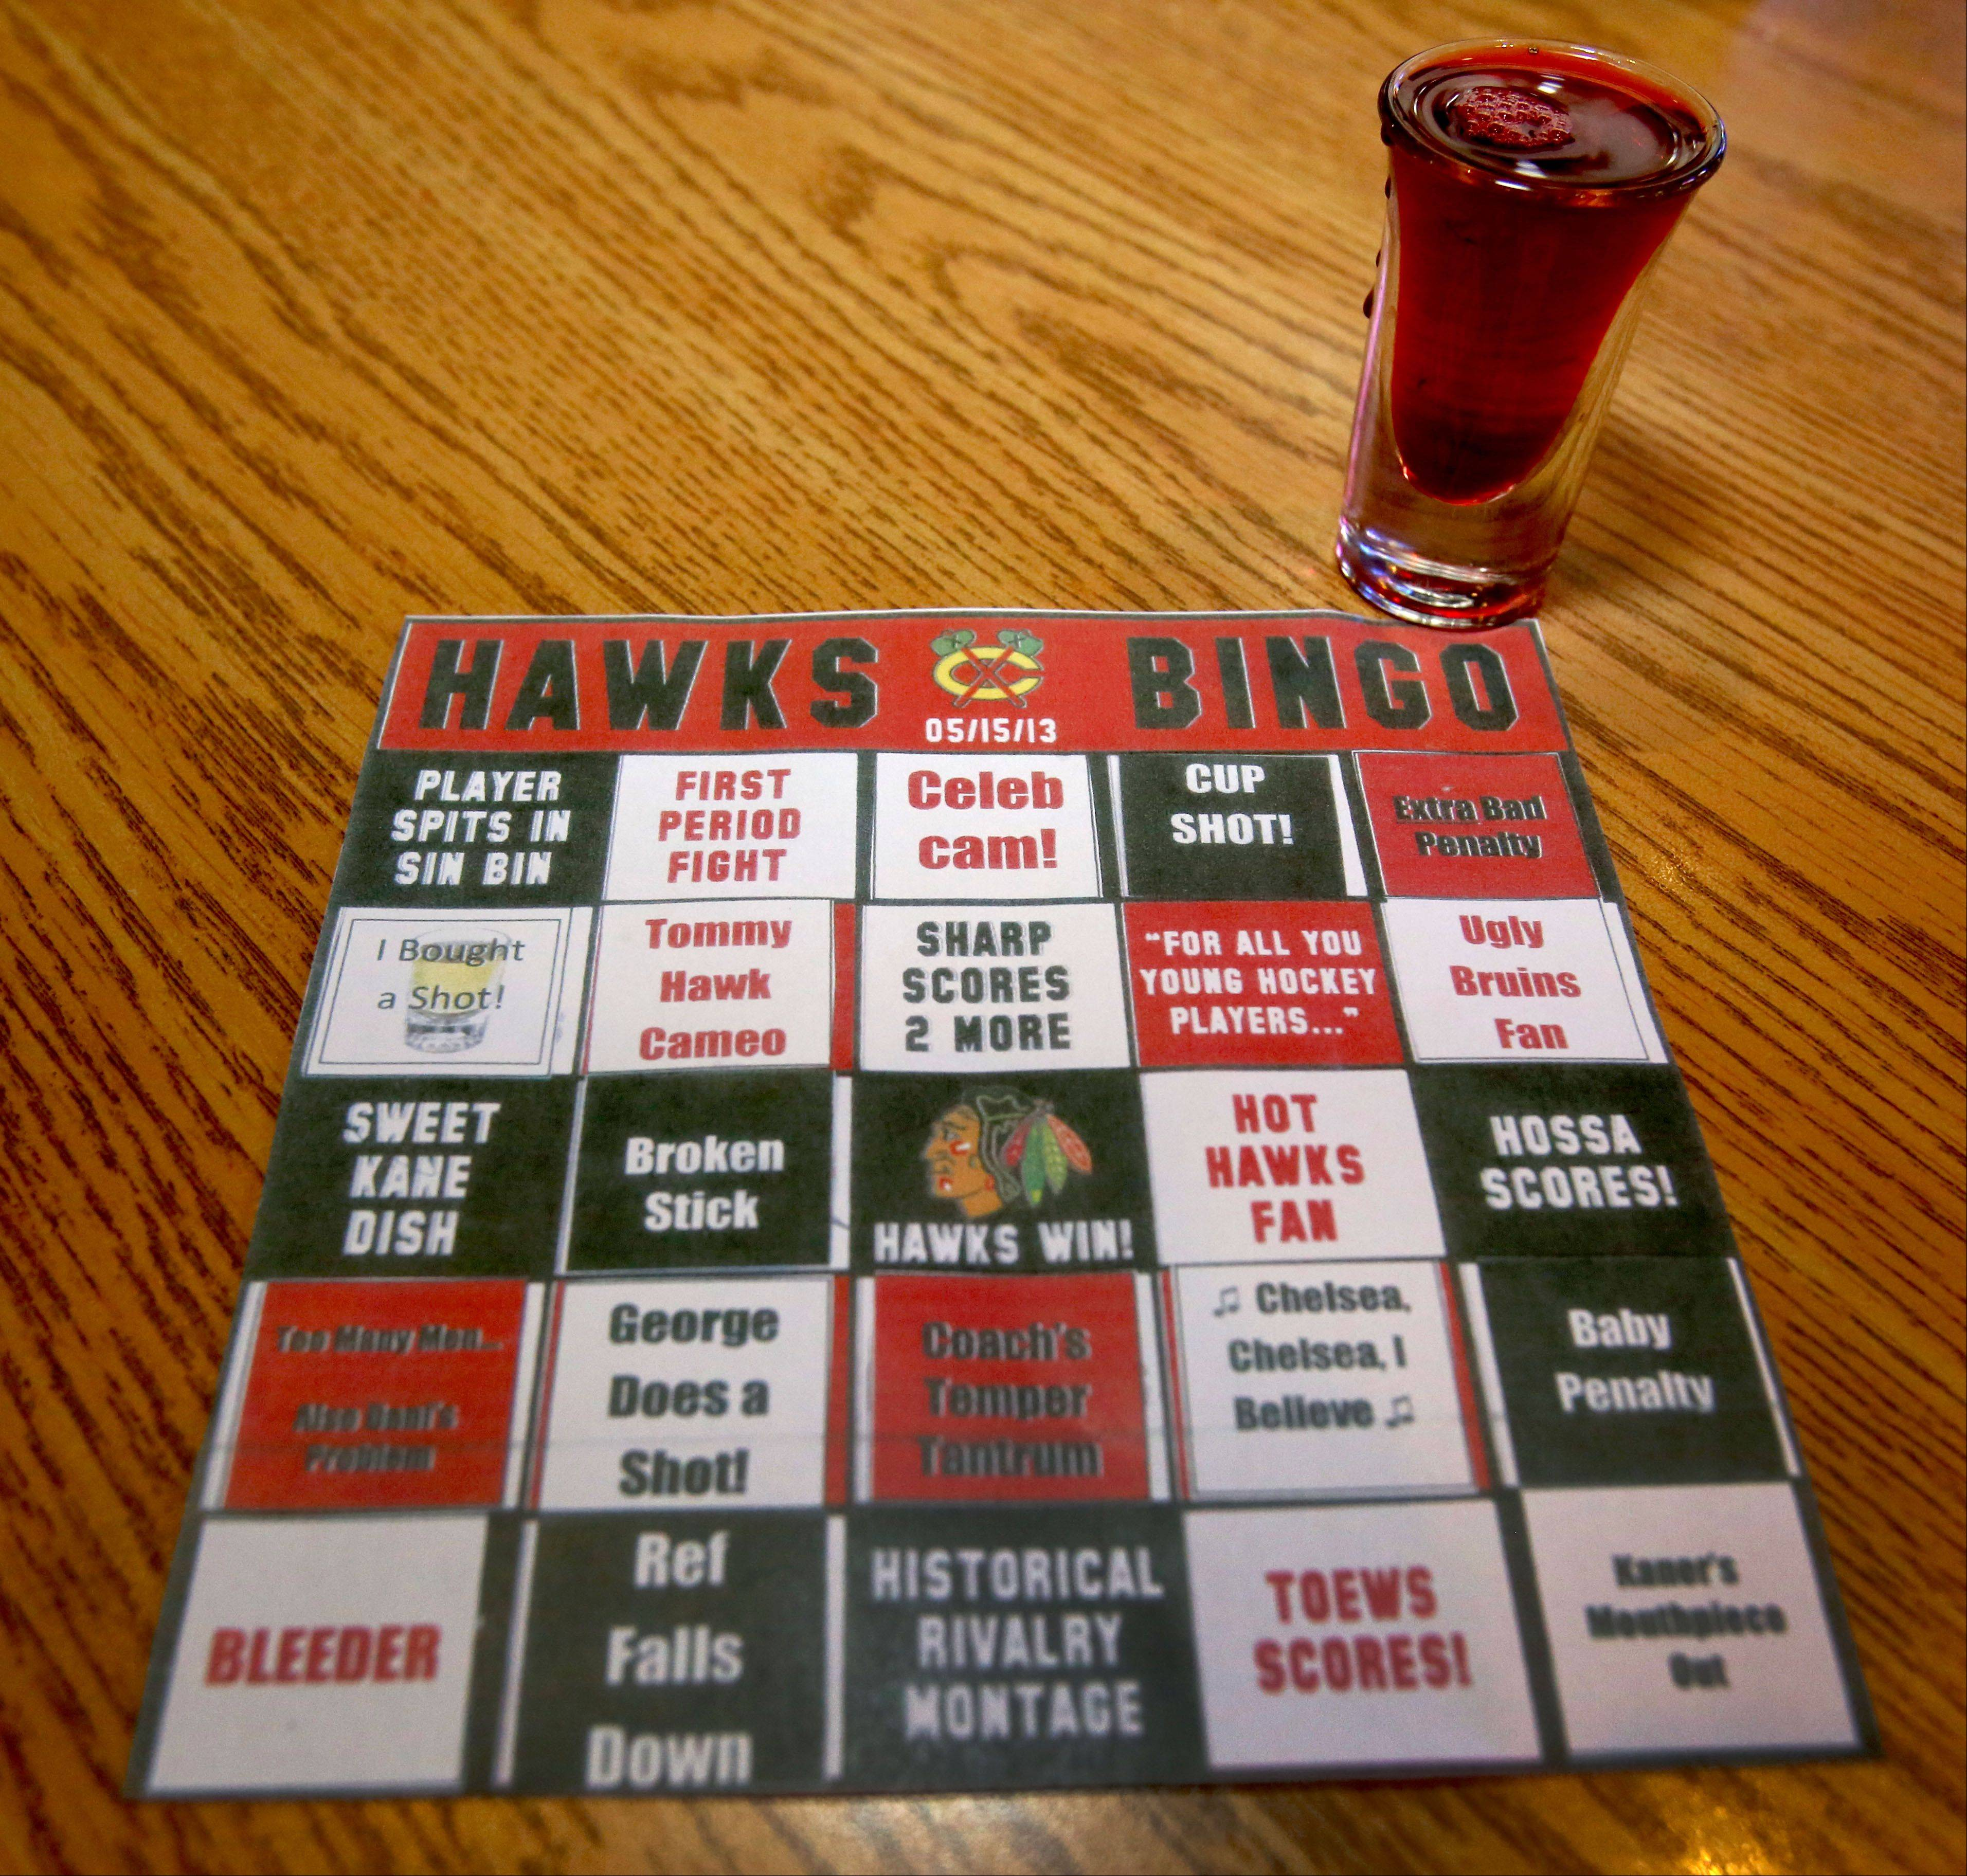 Fans can play a Hawks bingo game at Blue Line Bar & Grill in Addison.